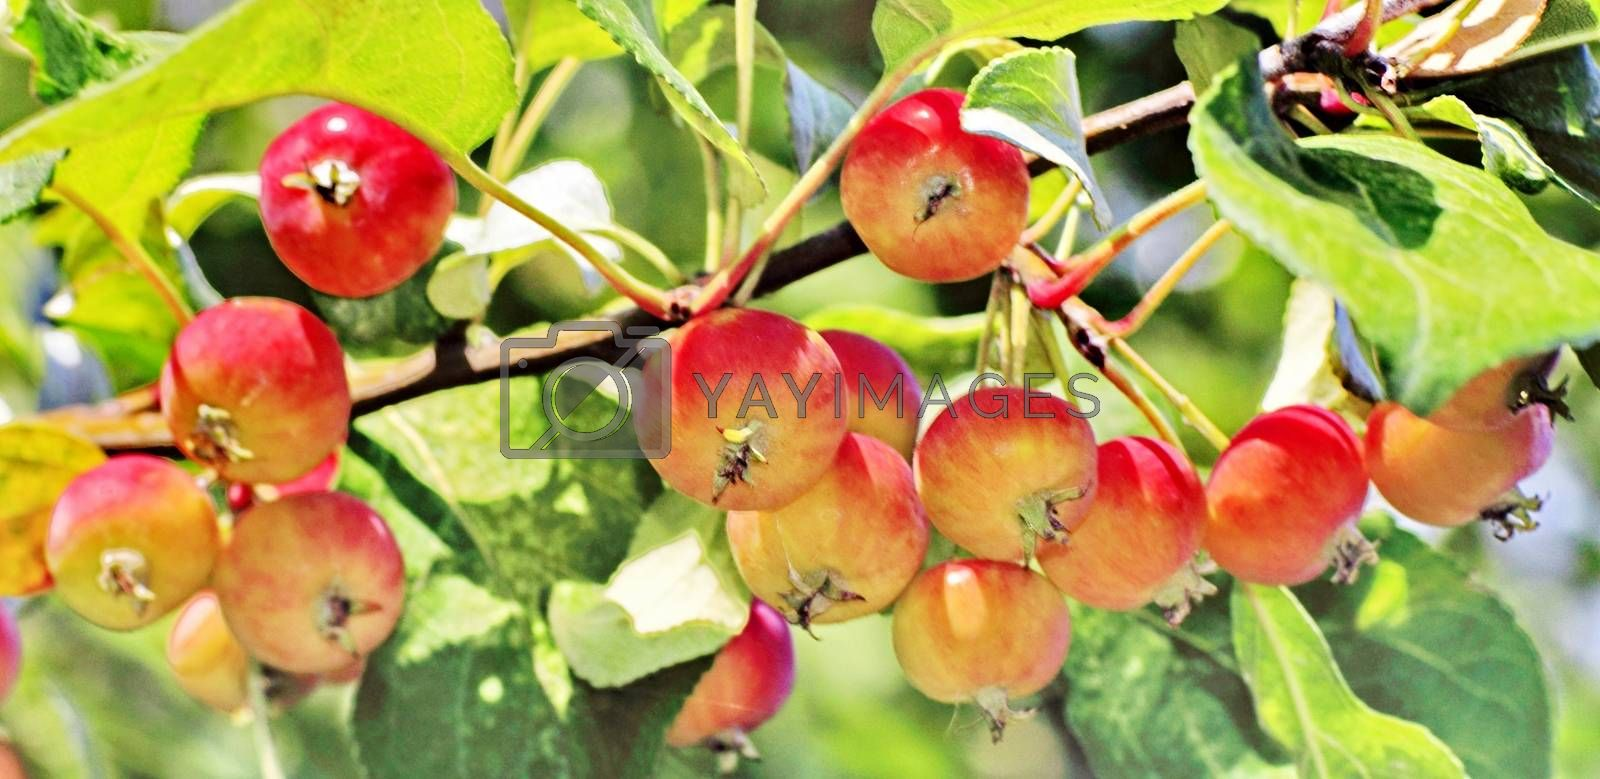 Royalty free image of ripe apples by victorych